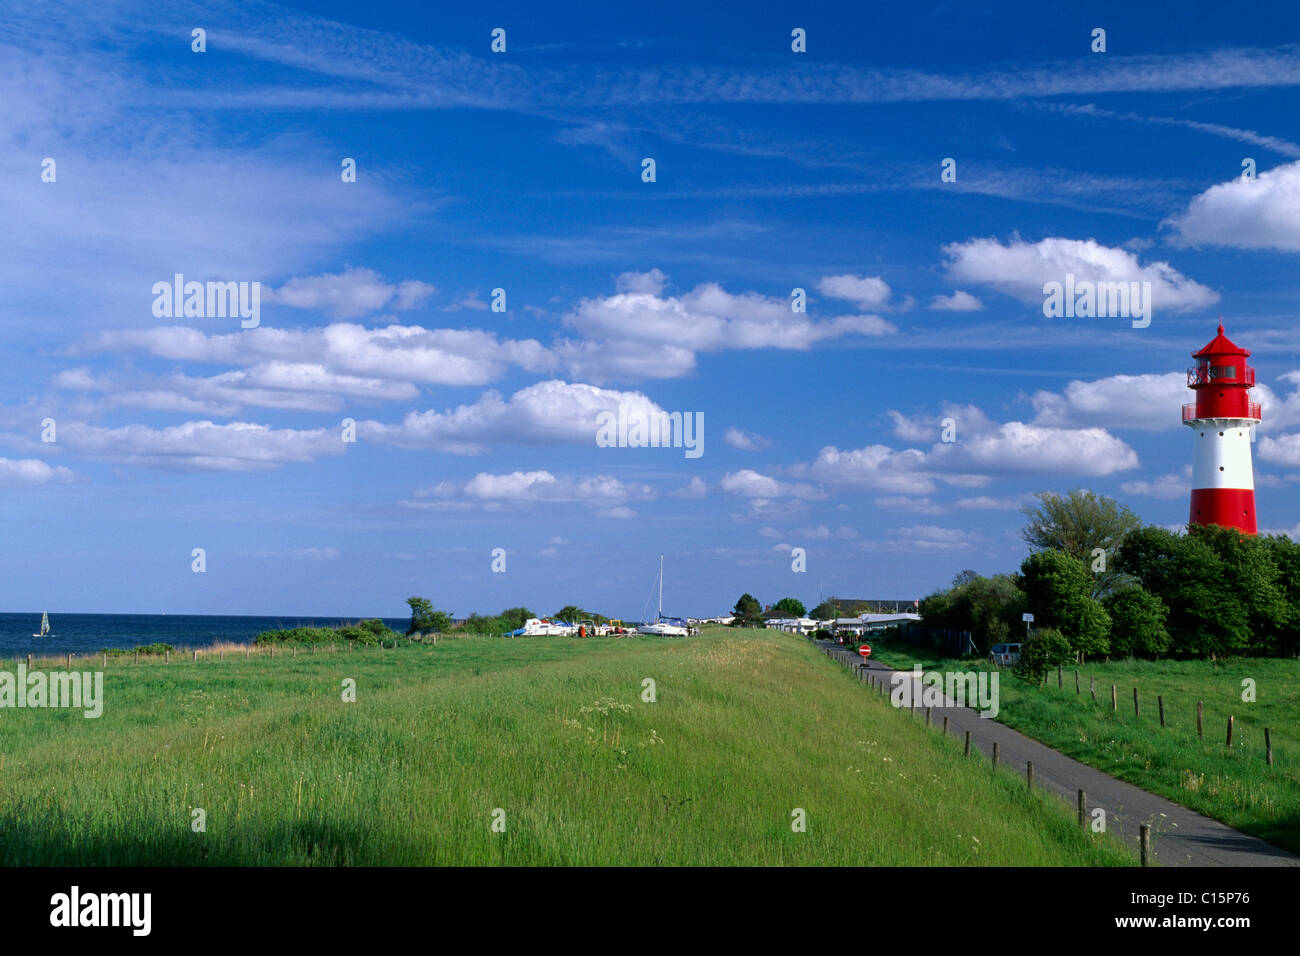 Lighthouse behind the Pommerby beach, Angeln, Schleswig-Holstein, Germany, Europe - Stock Image